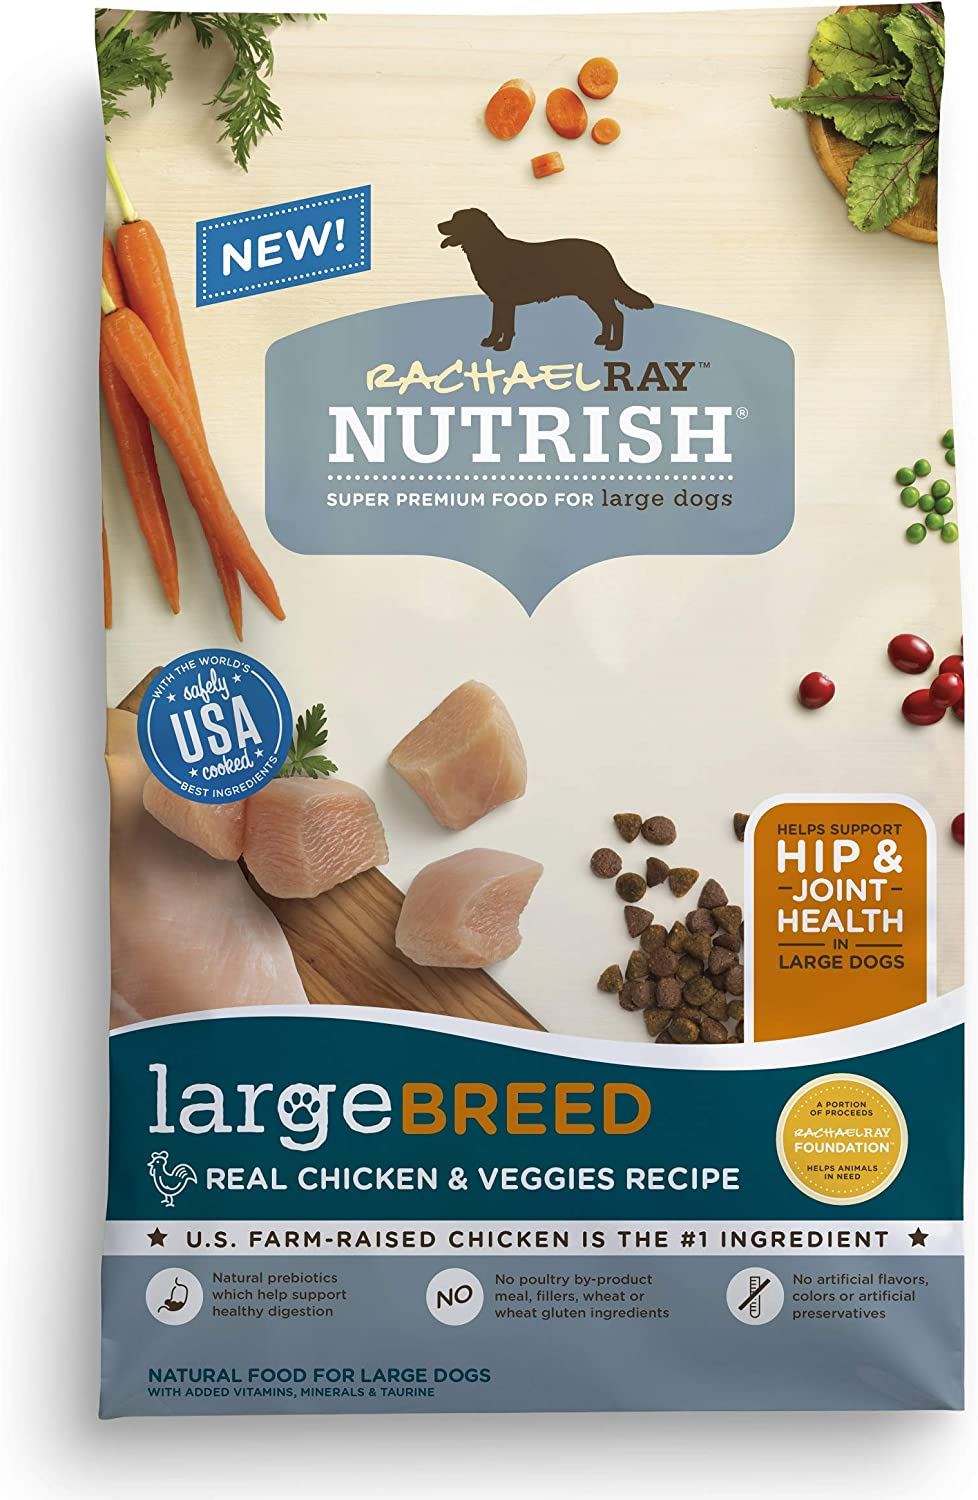 4. Rachael Ray Nutrish Large Breed